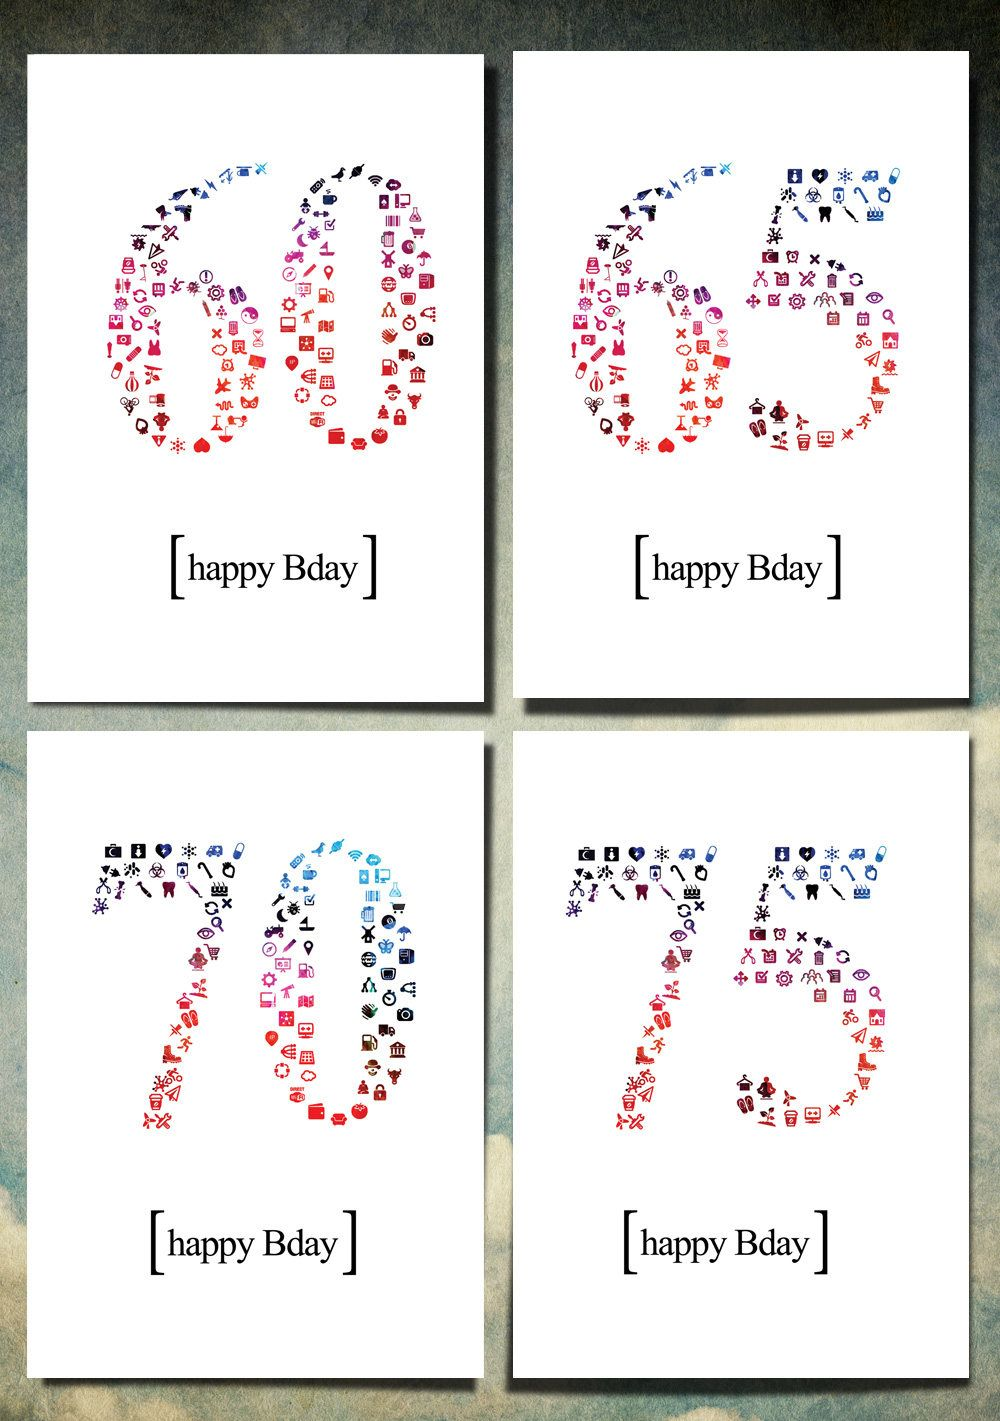 4 Printable Happy Birthday Card   customized numbered 60 to 75 years 60   65 I 70 I 75 ICON & ELEMENT Instant download Card   Print yourself by NettaWagner on Etsy